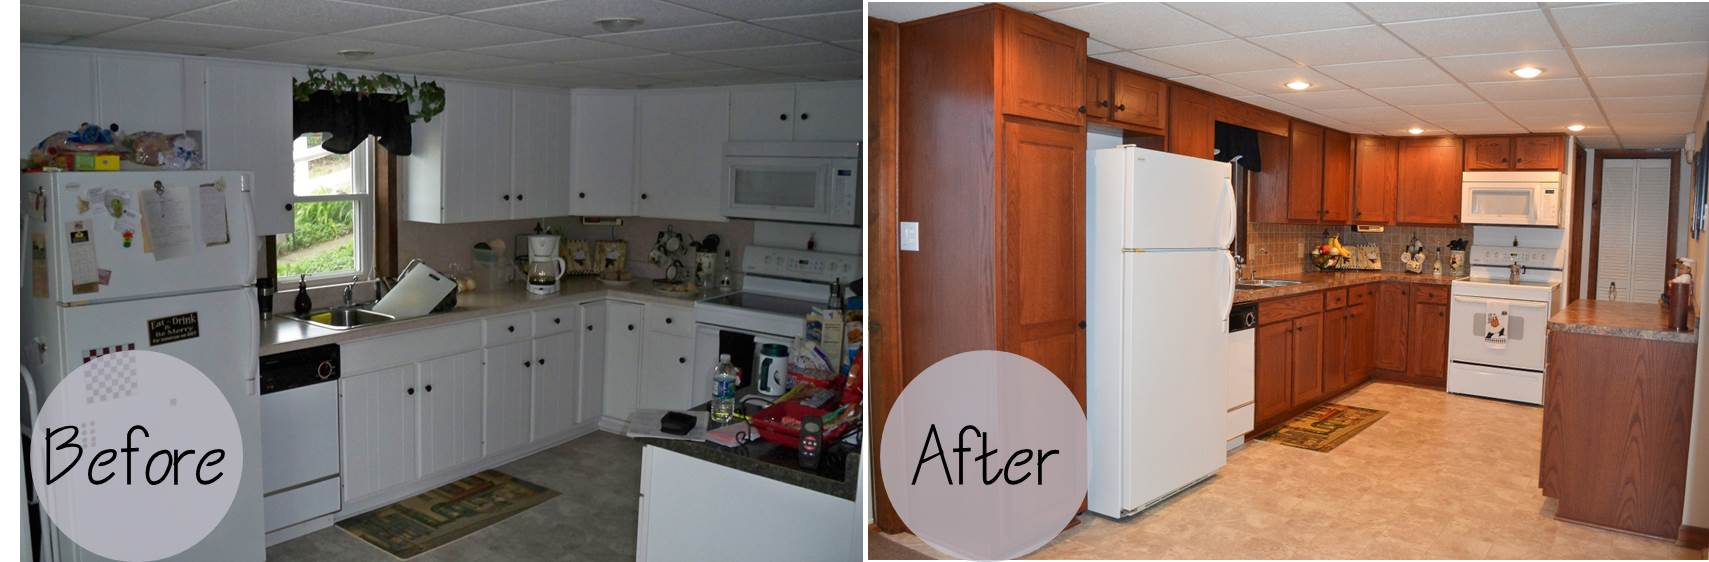 Cabinet Refacing Services In Bucks County, PA